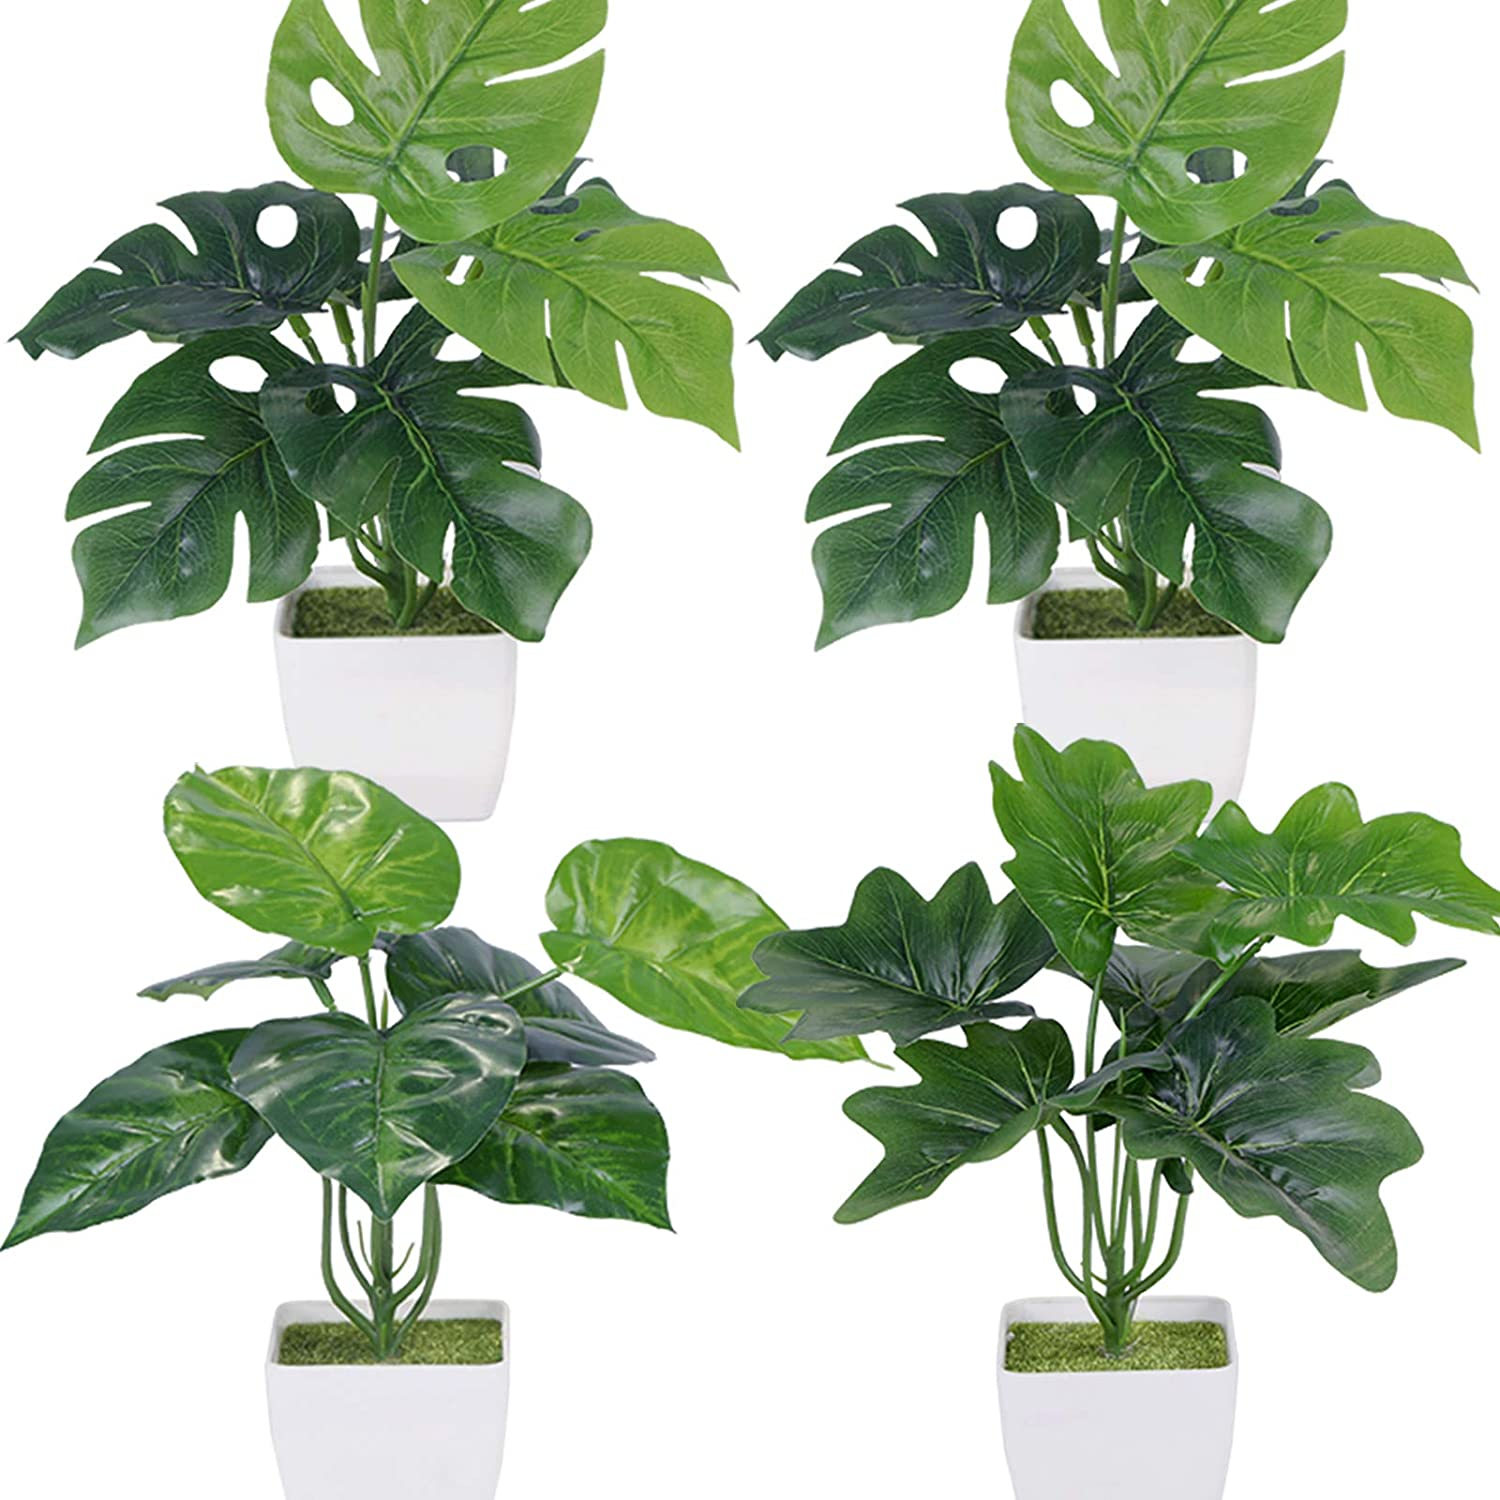 Summer Flower 4 Pack Small Faux Plants Indoor,Fake Plants in Pots,Greenery Artifical Plants for Shelf Desktop,Bedroom Farmhouse Bathroom Home Decorations(Palm Monstera Leaf+Peacock Leaves)